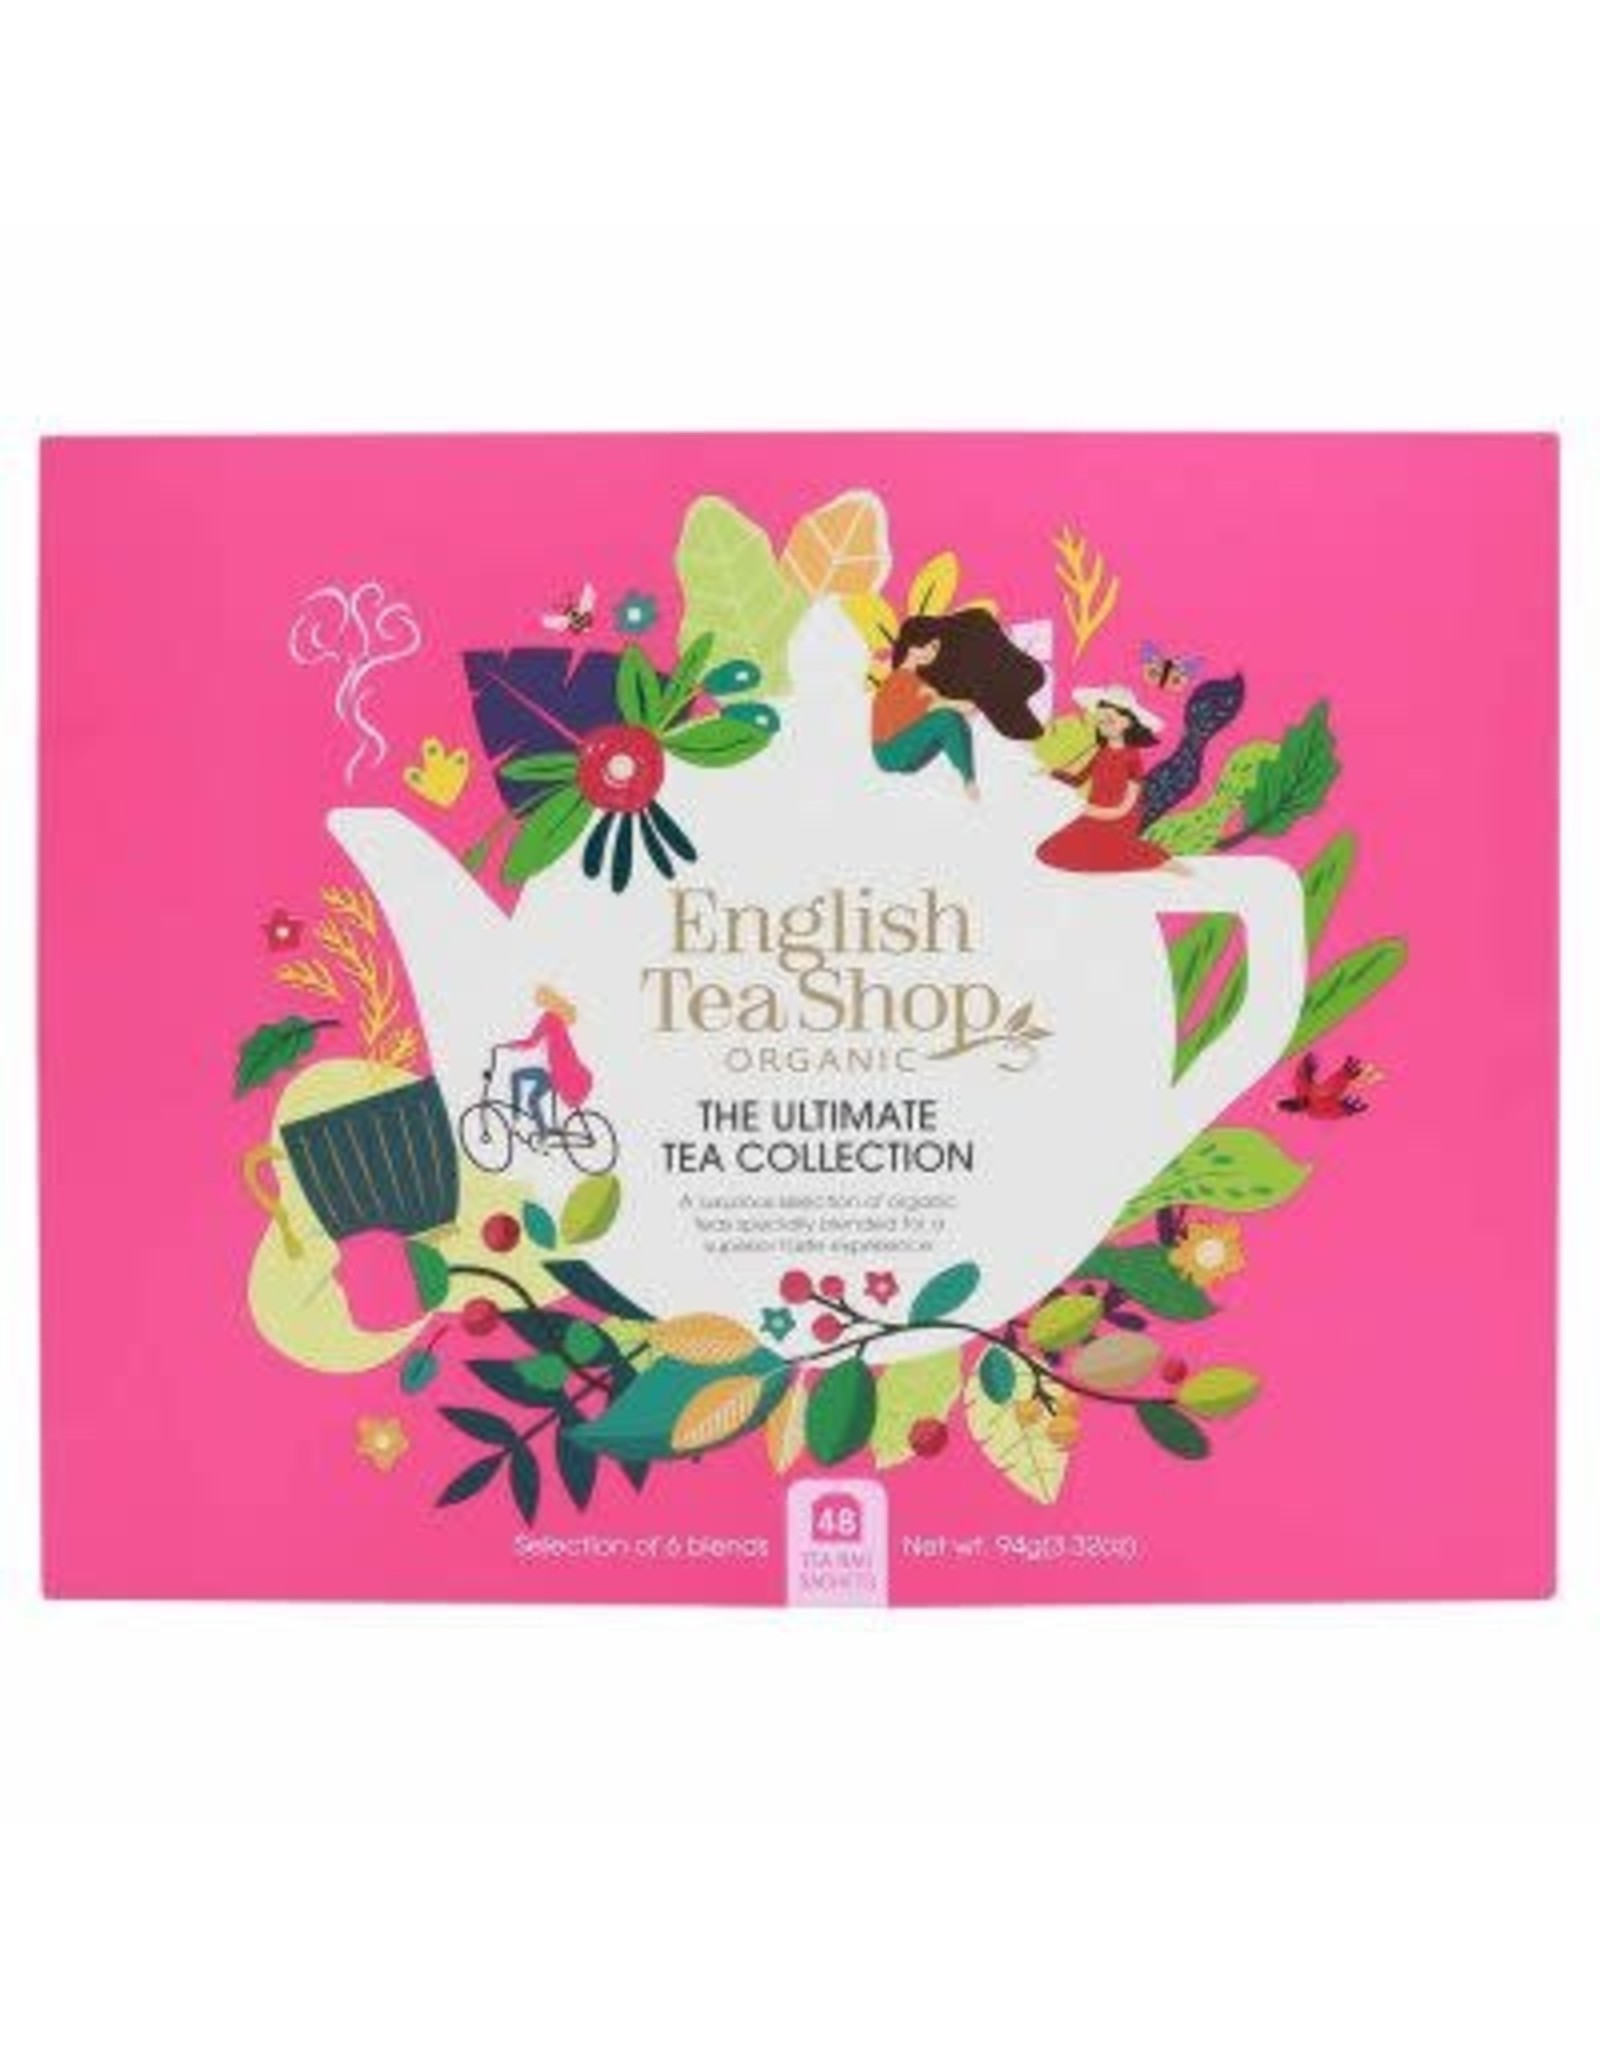 English Tea Shop The Ultimate Tea Collection - 48pk